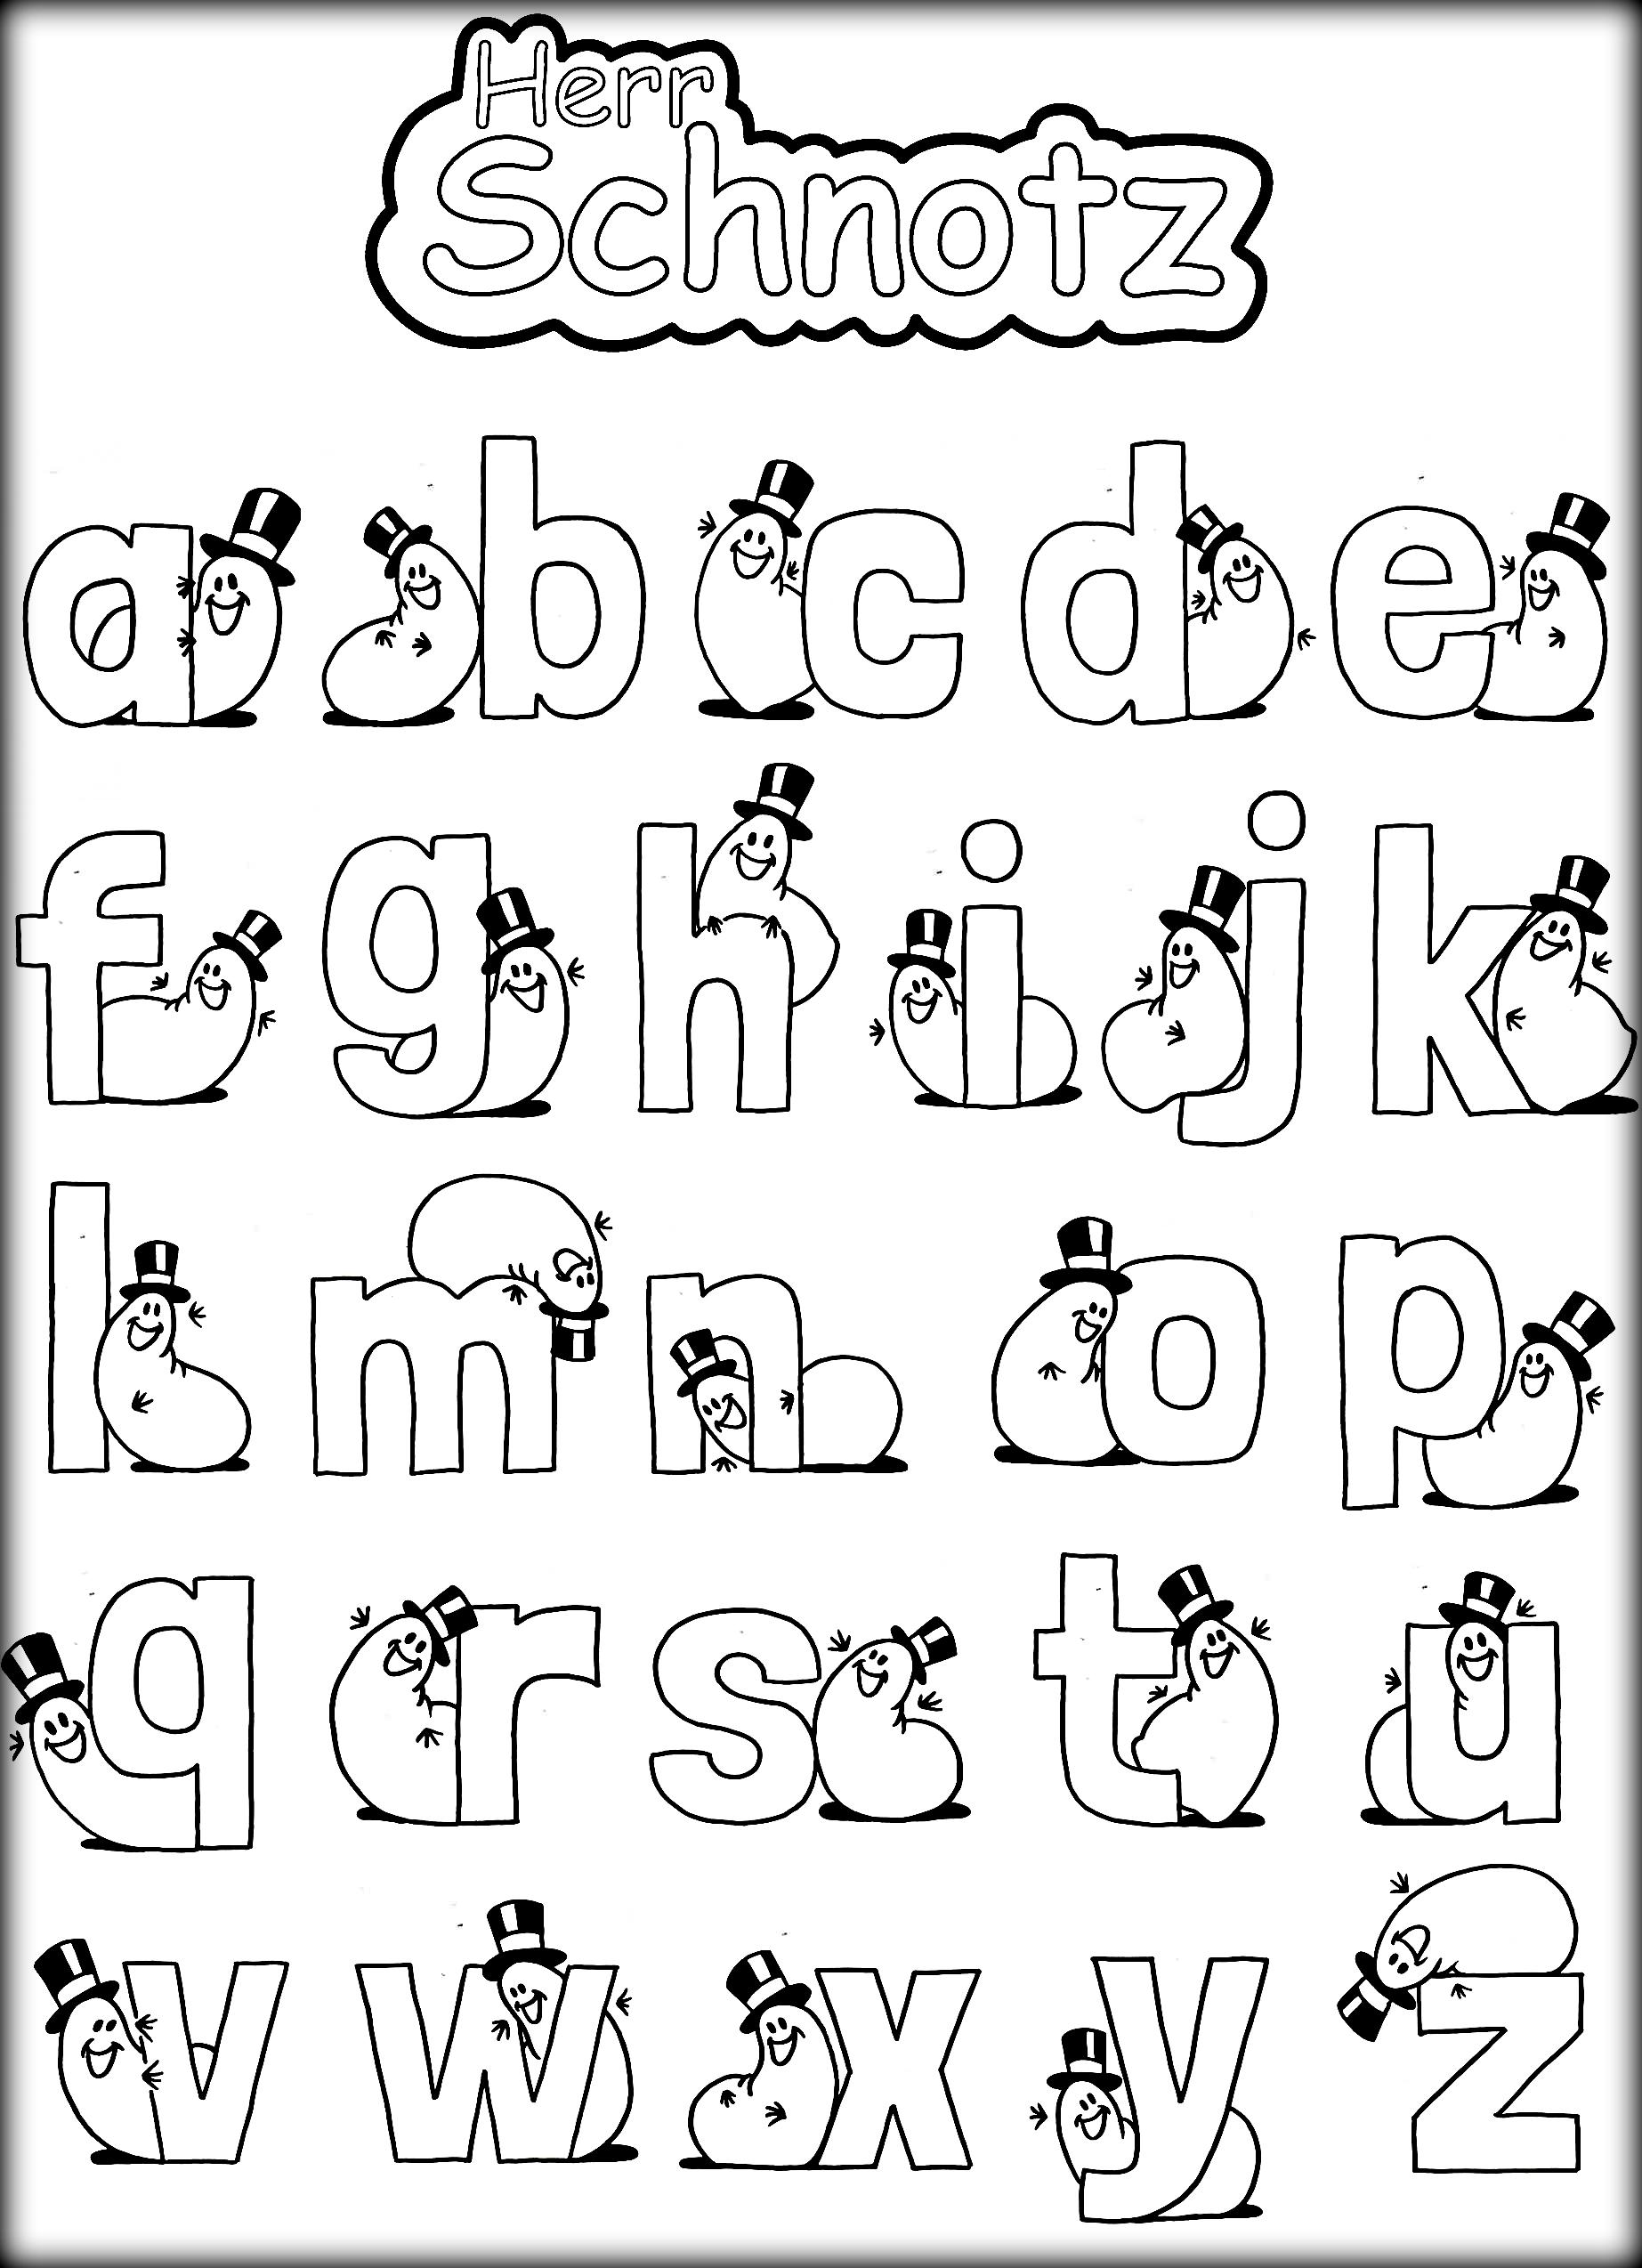 coloring sheet alphabet coloring pages alphabet coloring pages getcoloringpagescom coloring pages sheet alphabet coloring